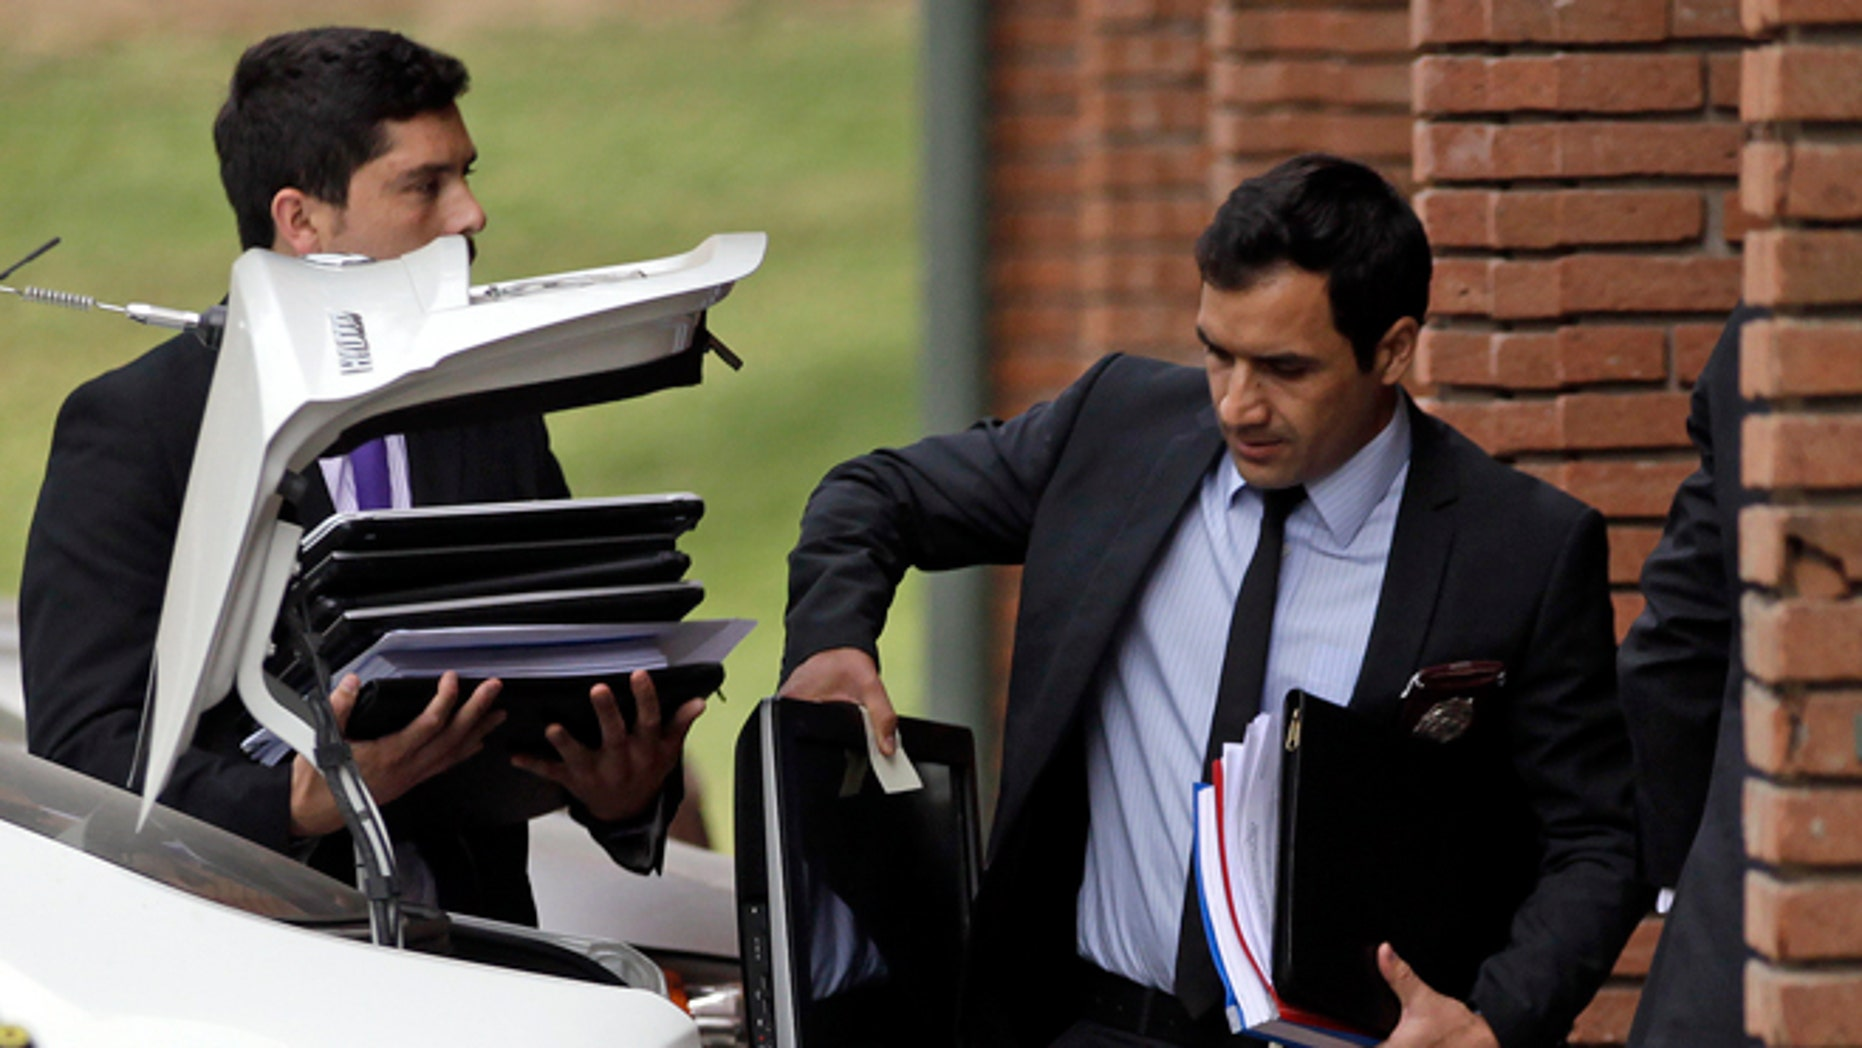 Police investigators carry documents and computers taken from the office of Chile's former president of the National Association of Professional Soccer, ANFP, Sergio Jadue, in Santiago, Chile, Thursday, Dec. 3, 2015.  U.S. prosecutors confirmed that Jadue had pleaded guilty to charges of racketeering conspiracy and wire fraud conspiracy, in the recent FIFA scandal. As part of their plea, Jadue agreed to forfeit all funds on deposit in his U.S. account. (AP Photo/Luis Hidalgo)